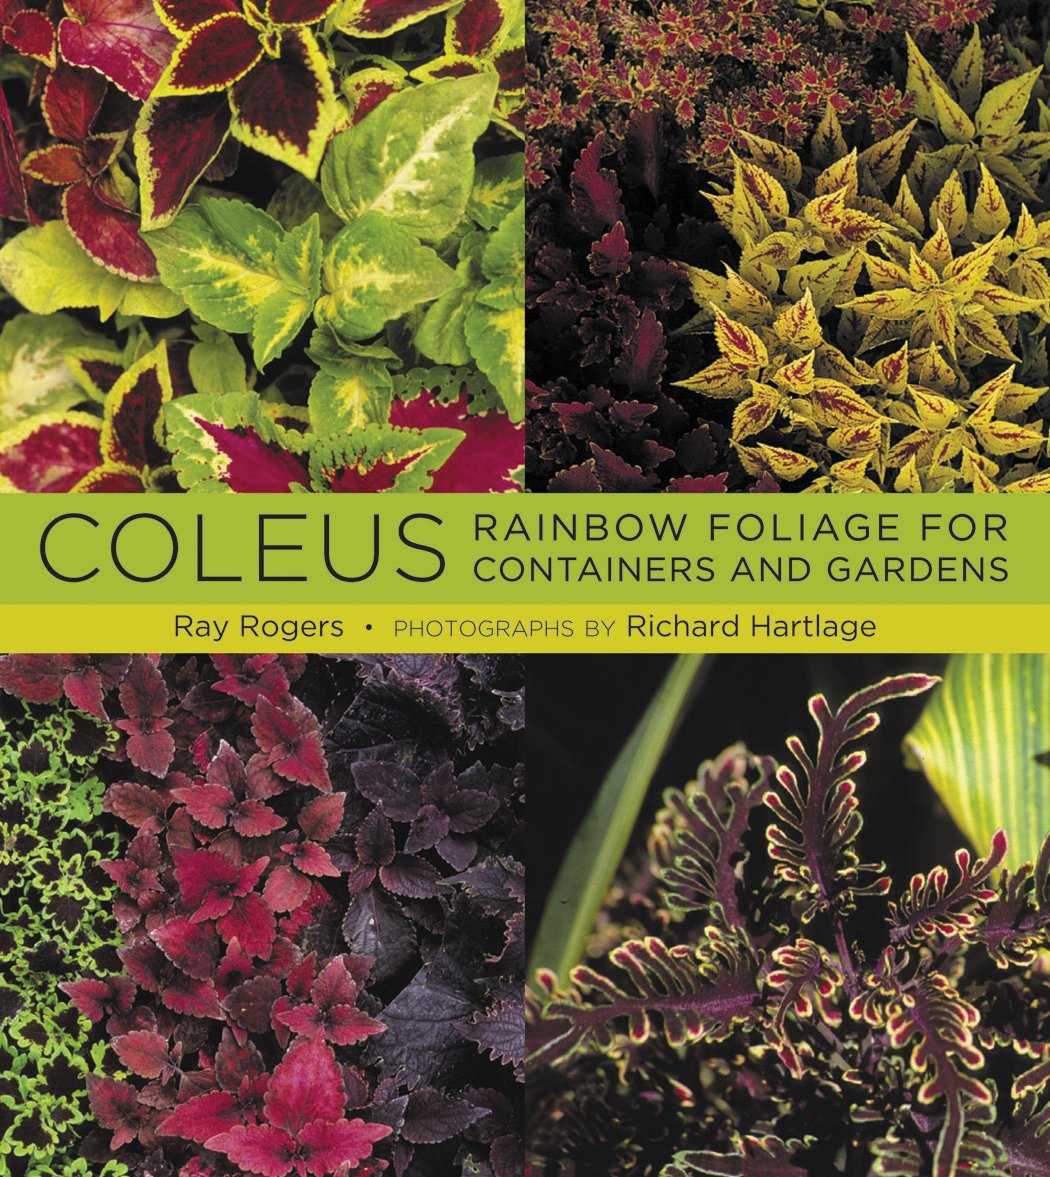 Coleus Rainbow Foliage For Containers And Gardens Ray Rogers